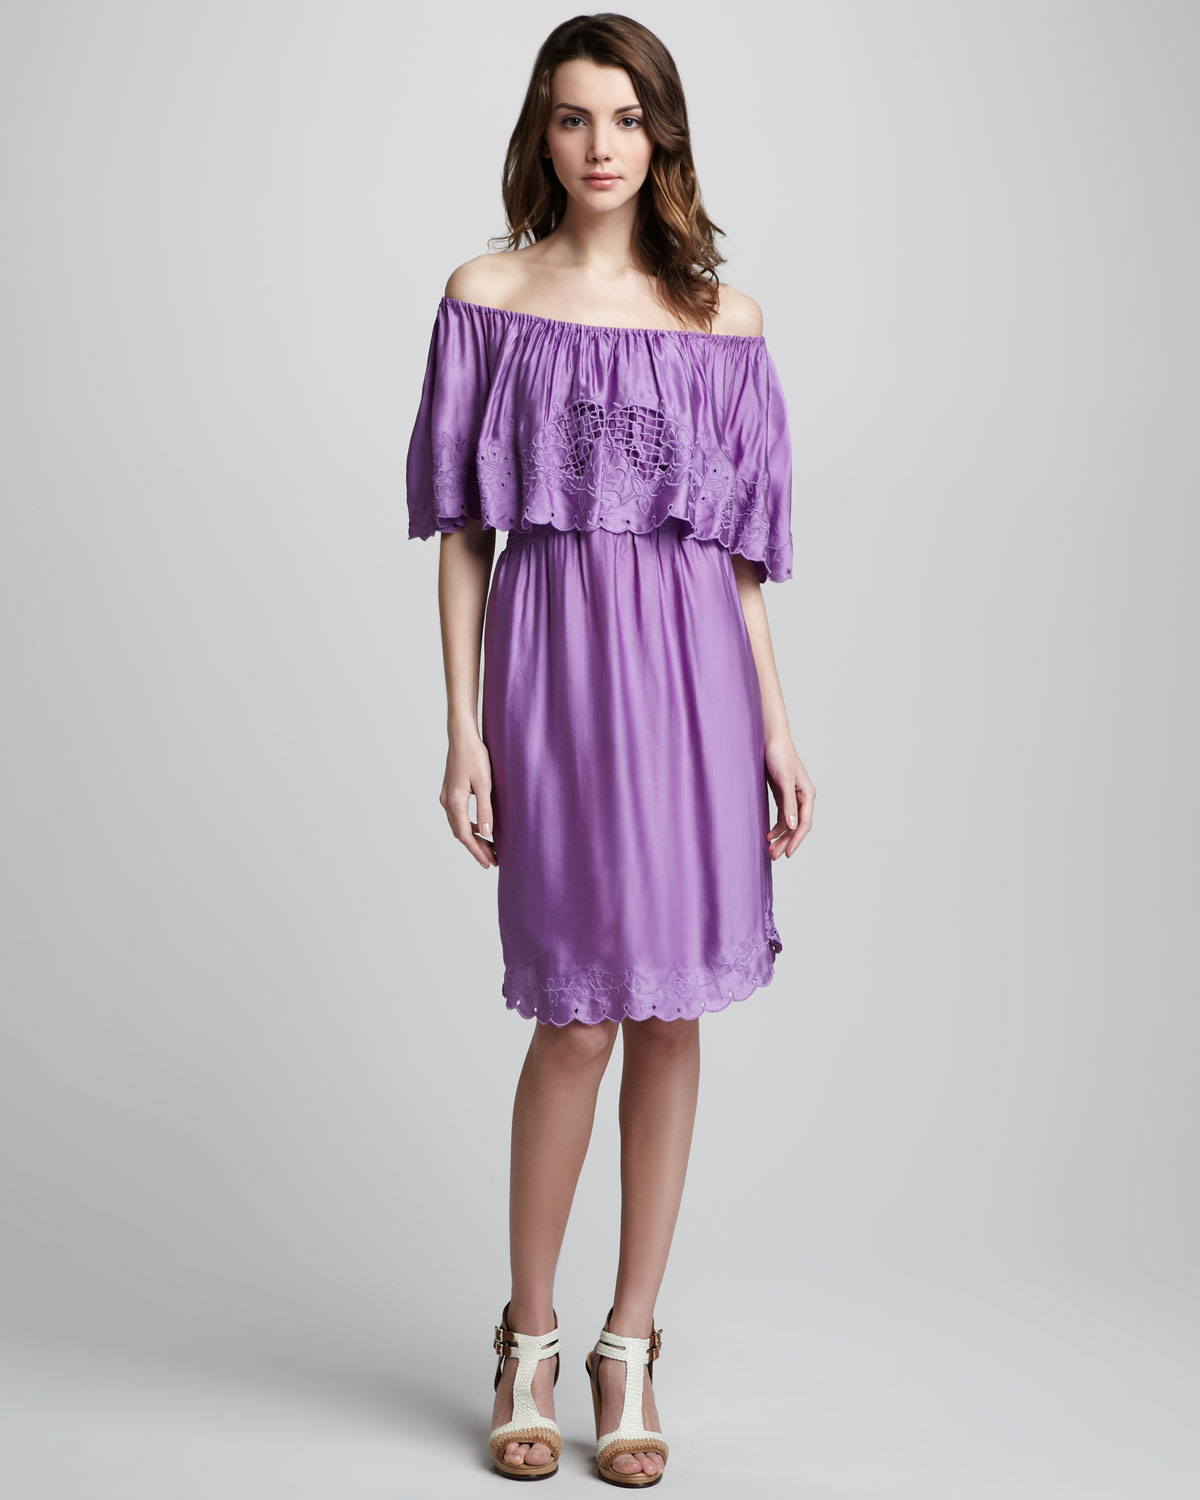 534018a26e6b Lyst - Free People Off-the-shoulder Dress in Purple